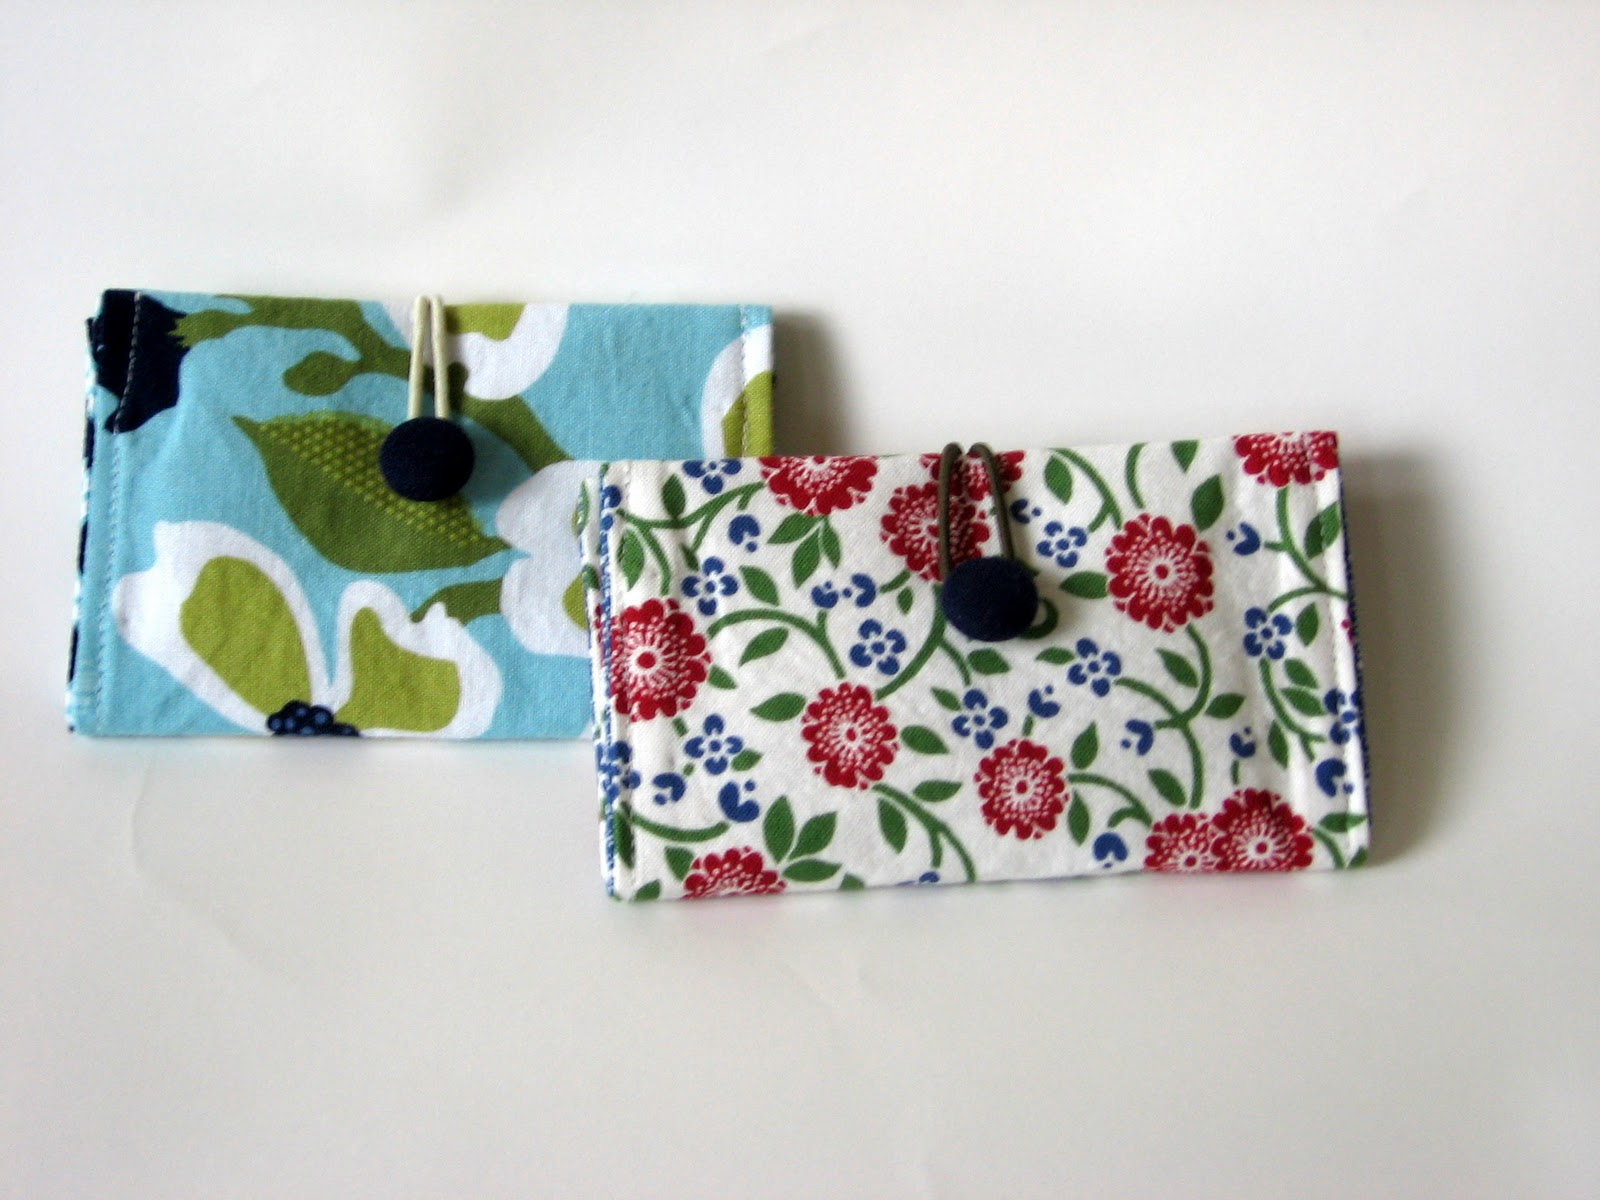 Needle and spatula card wallet sewing tutorial card wallet sewing tutorial jeuxipadfo Image collections